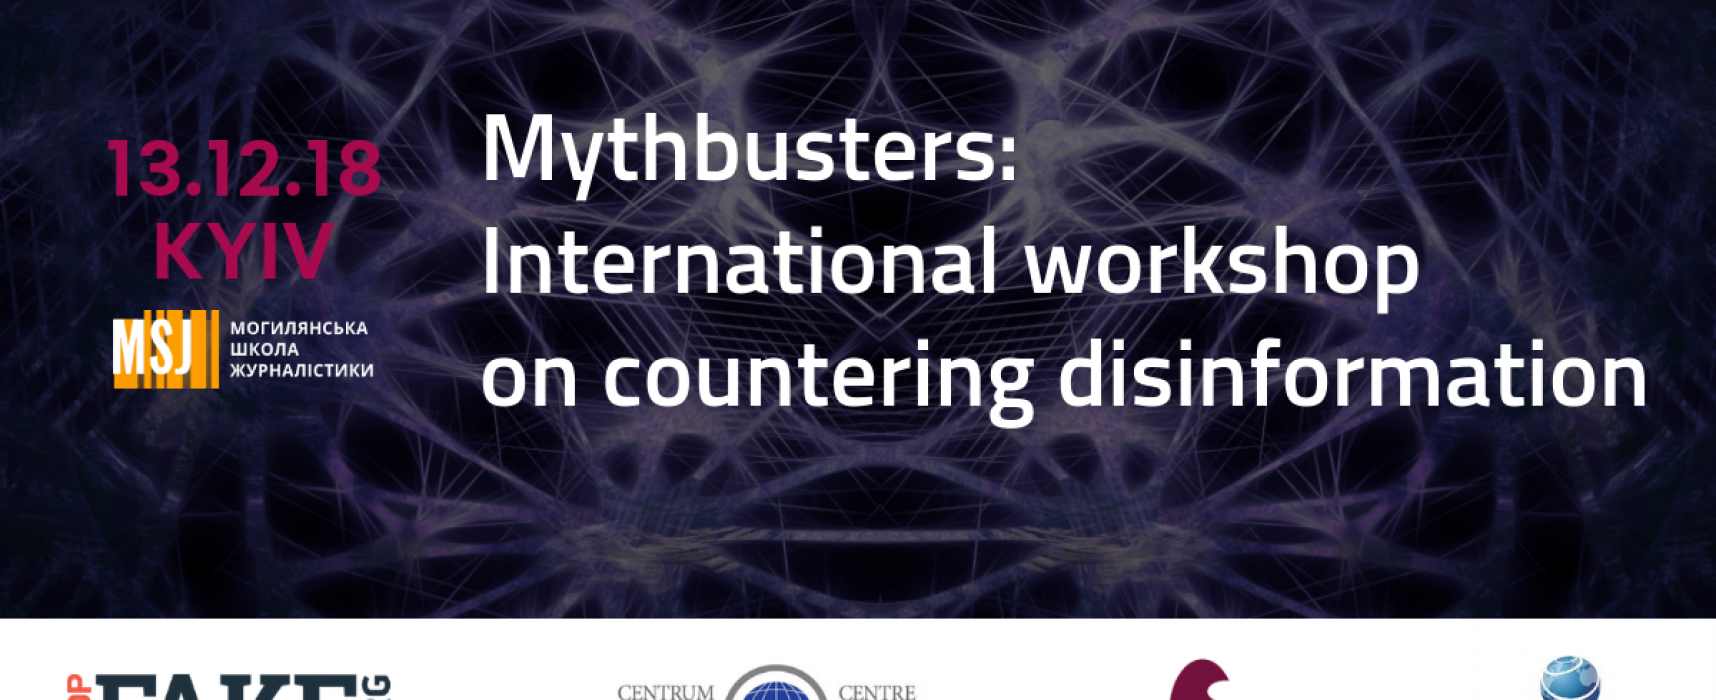 Mythbusters: International workshop on countering disinformation